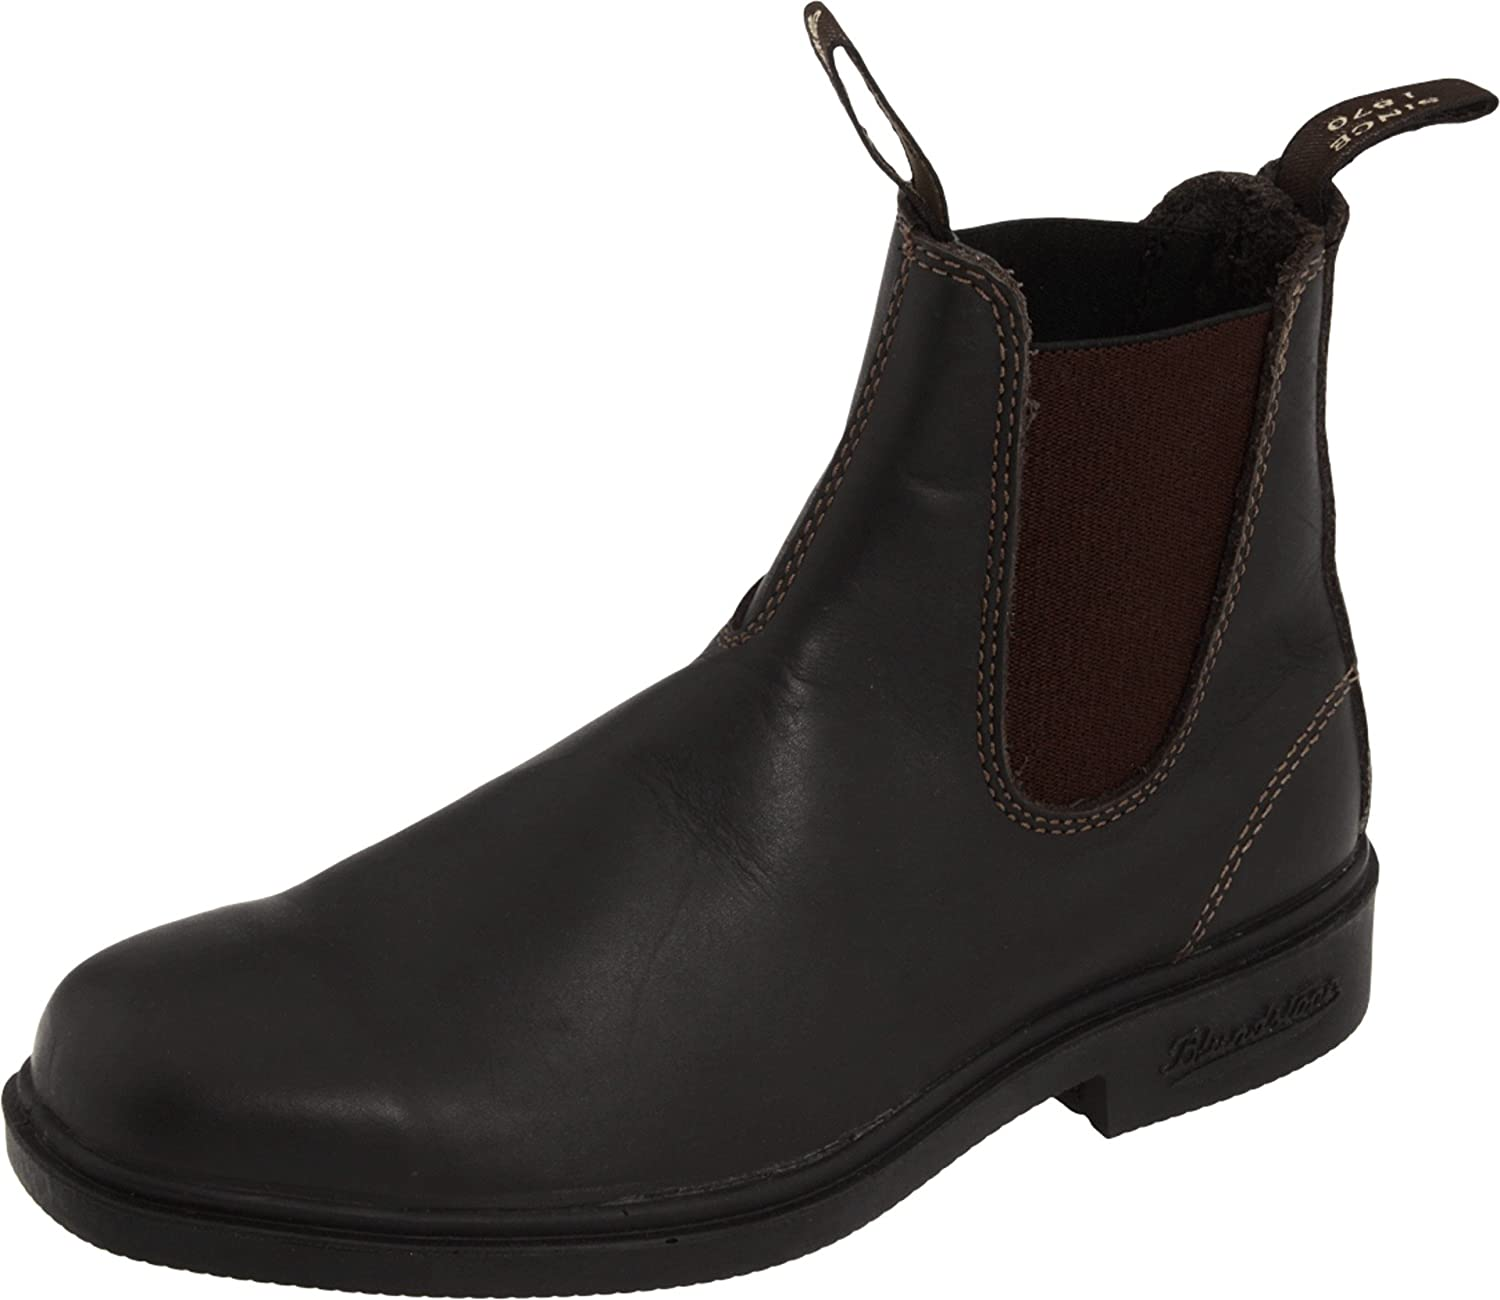 Blundstone Unisex Dress Series B0016HTZ5M 4 M US Men's /6 M US Women's -3 AU|Stout Brown